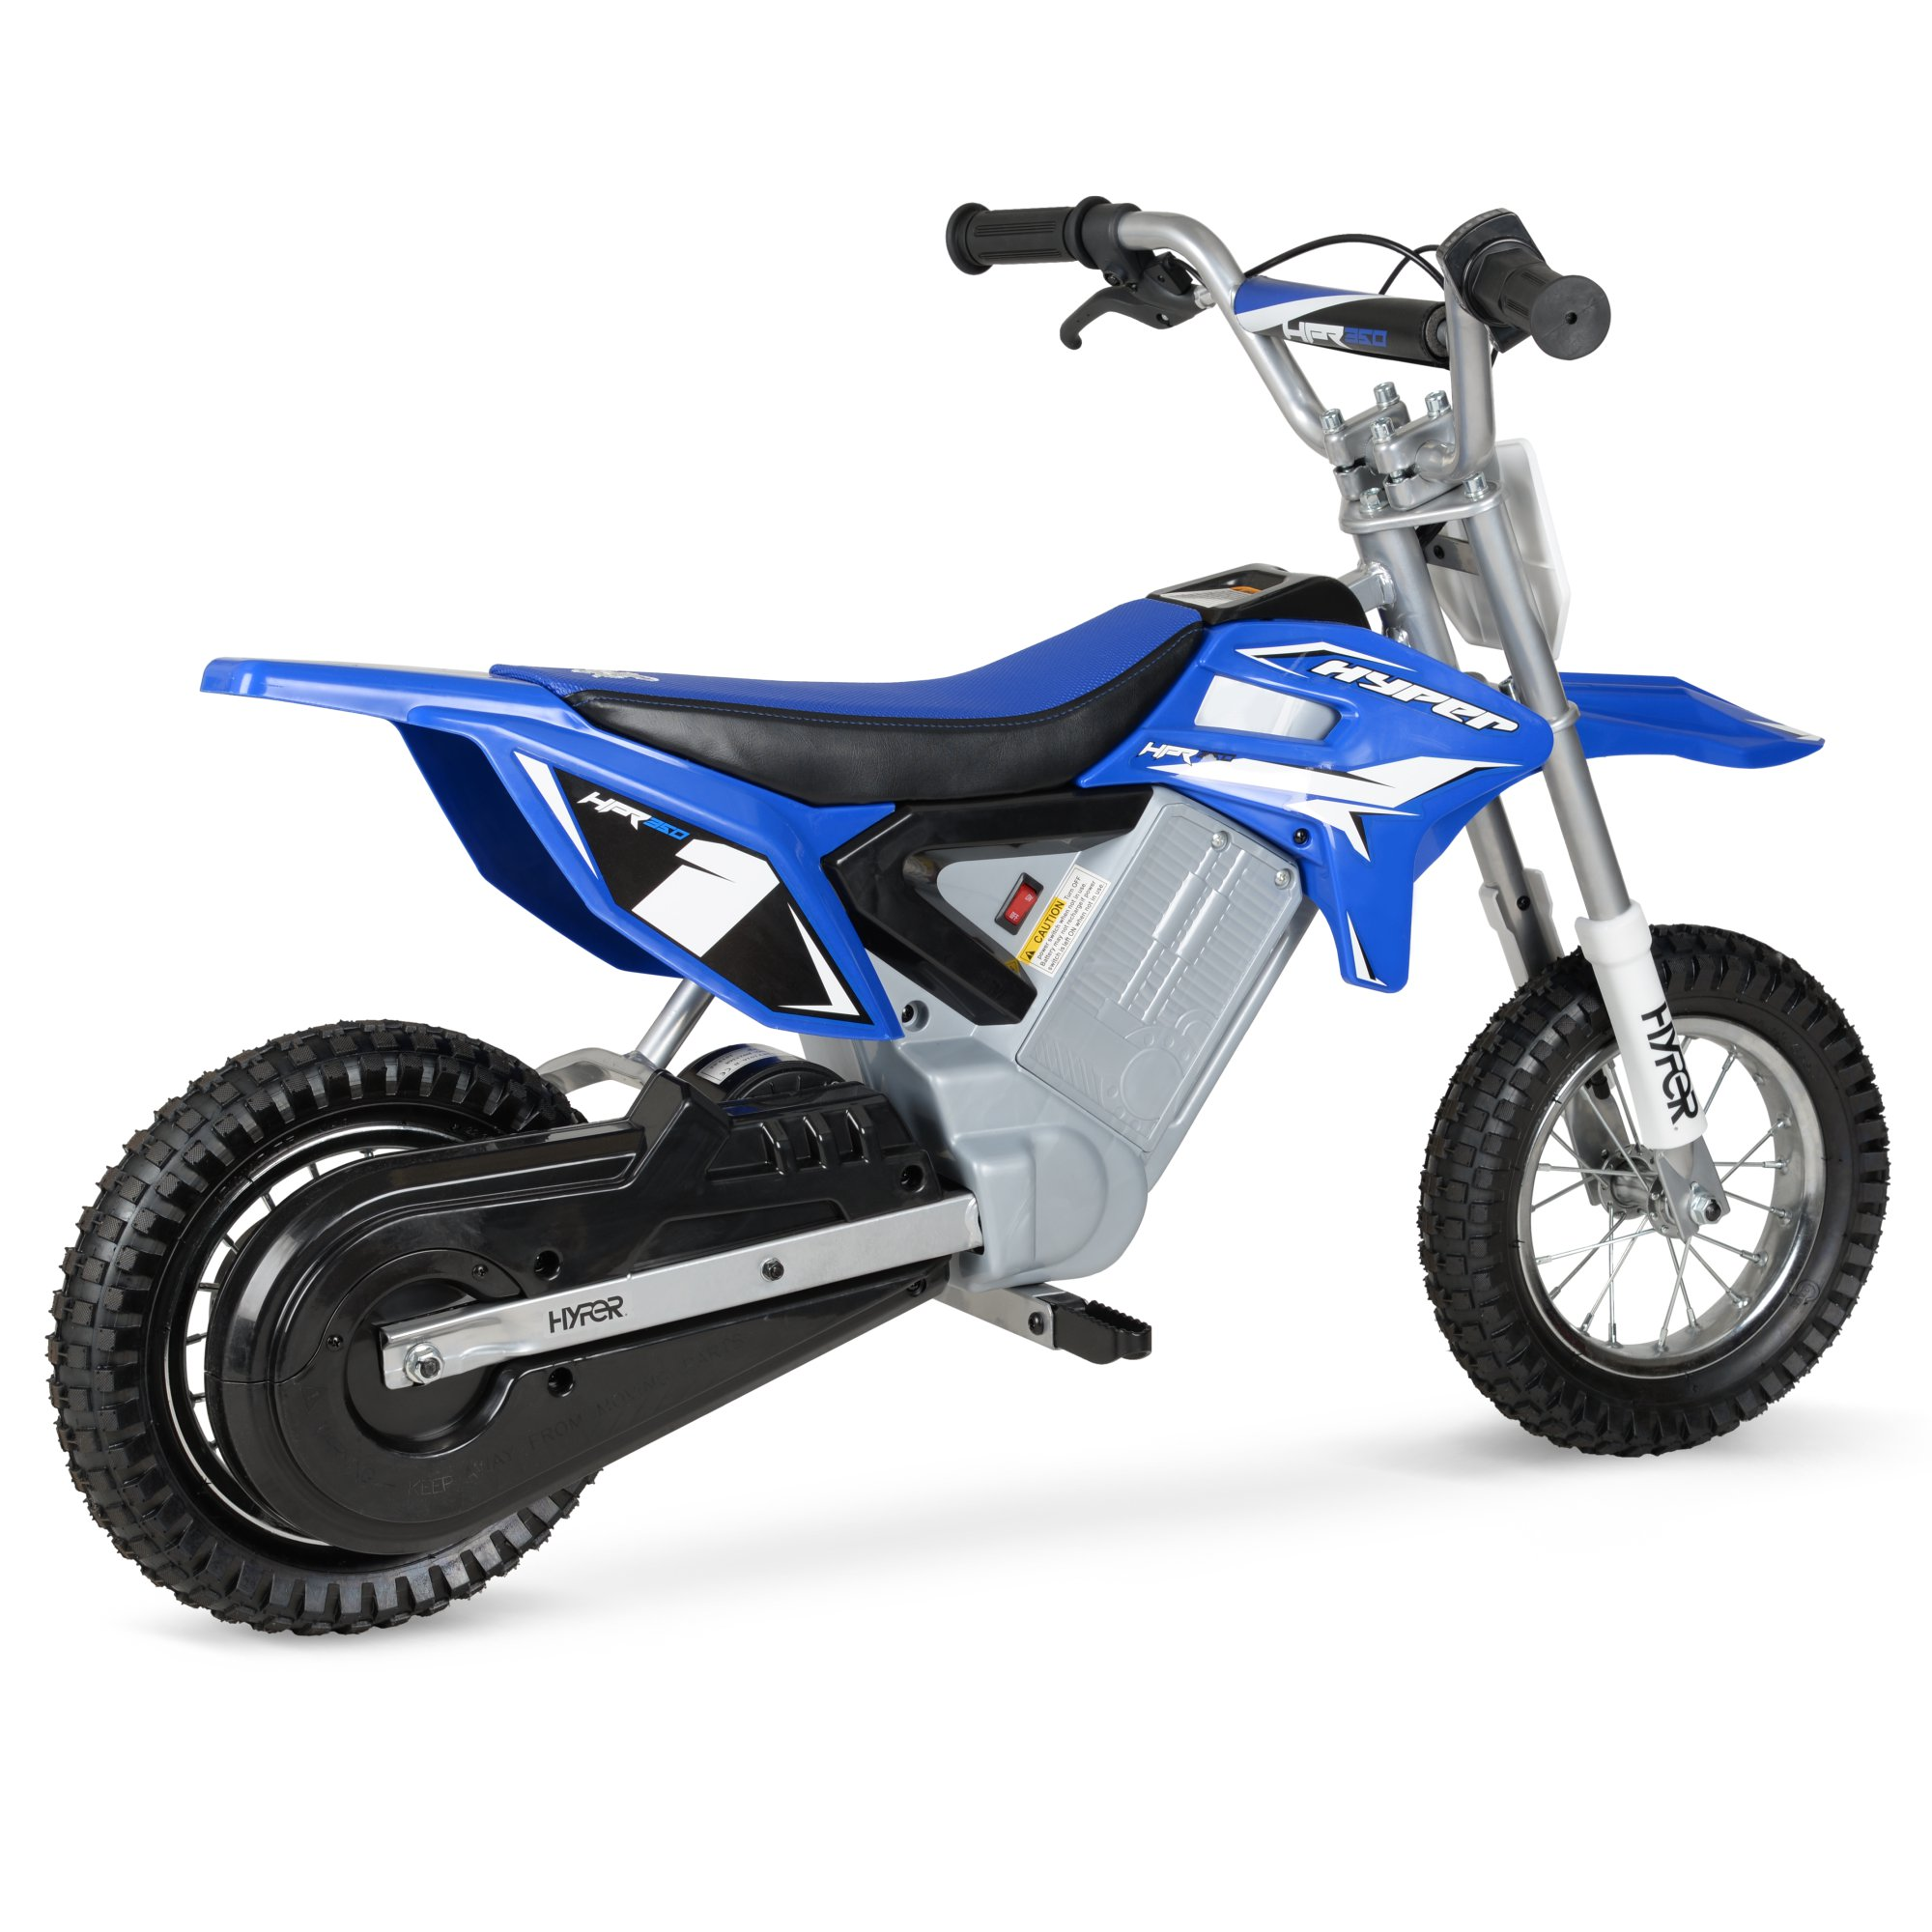 [TBQL_4184]  24V Hyper HPR350 Electric Motorcycle | Hyper Toy Company | 24 Volt Wiring Diagram Electric Dirt Bike |  | Hyper Toy Company